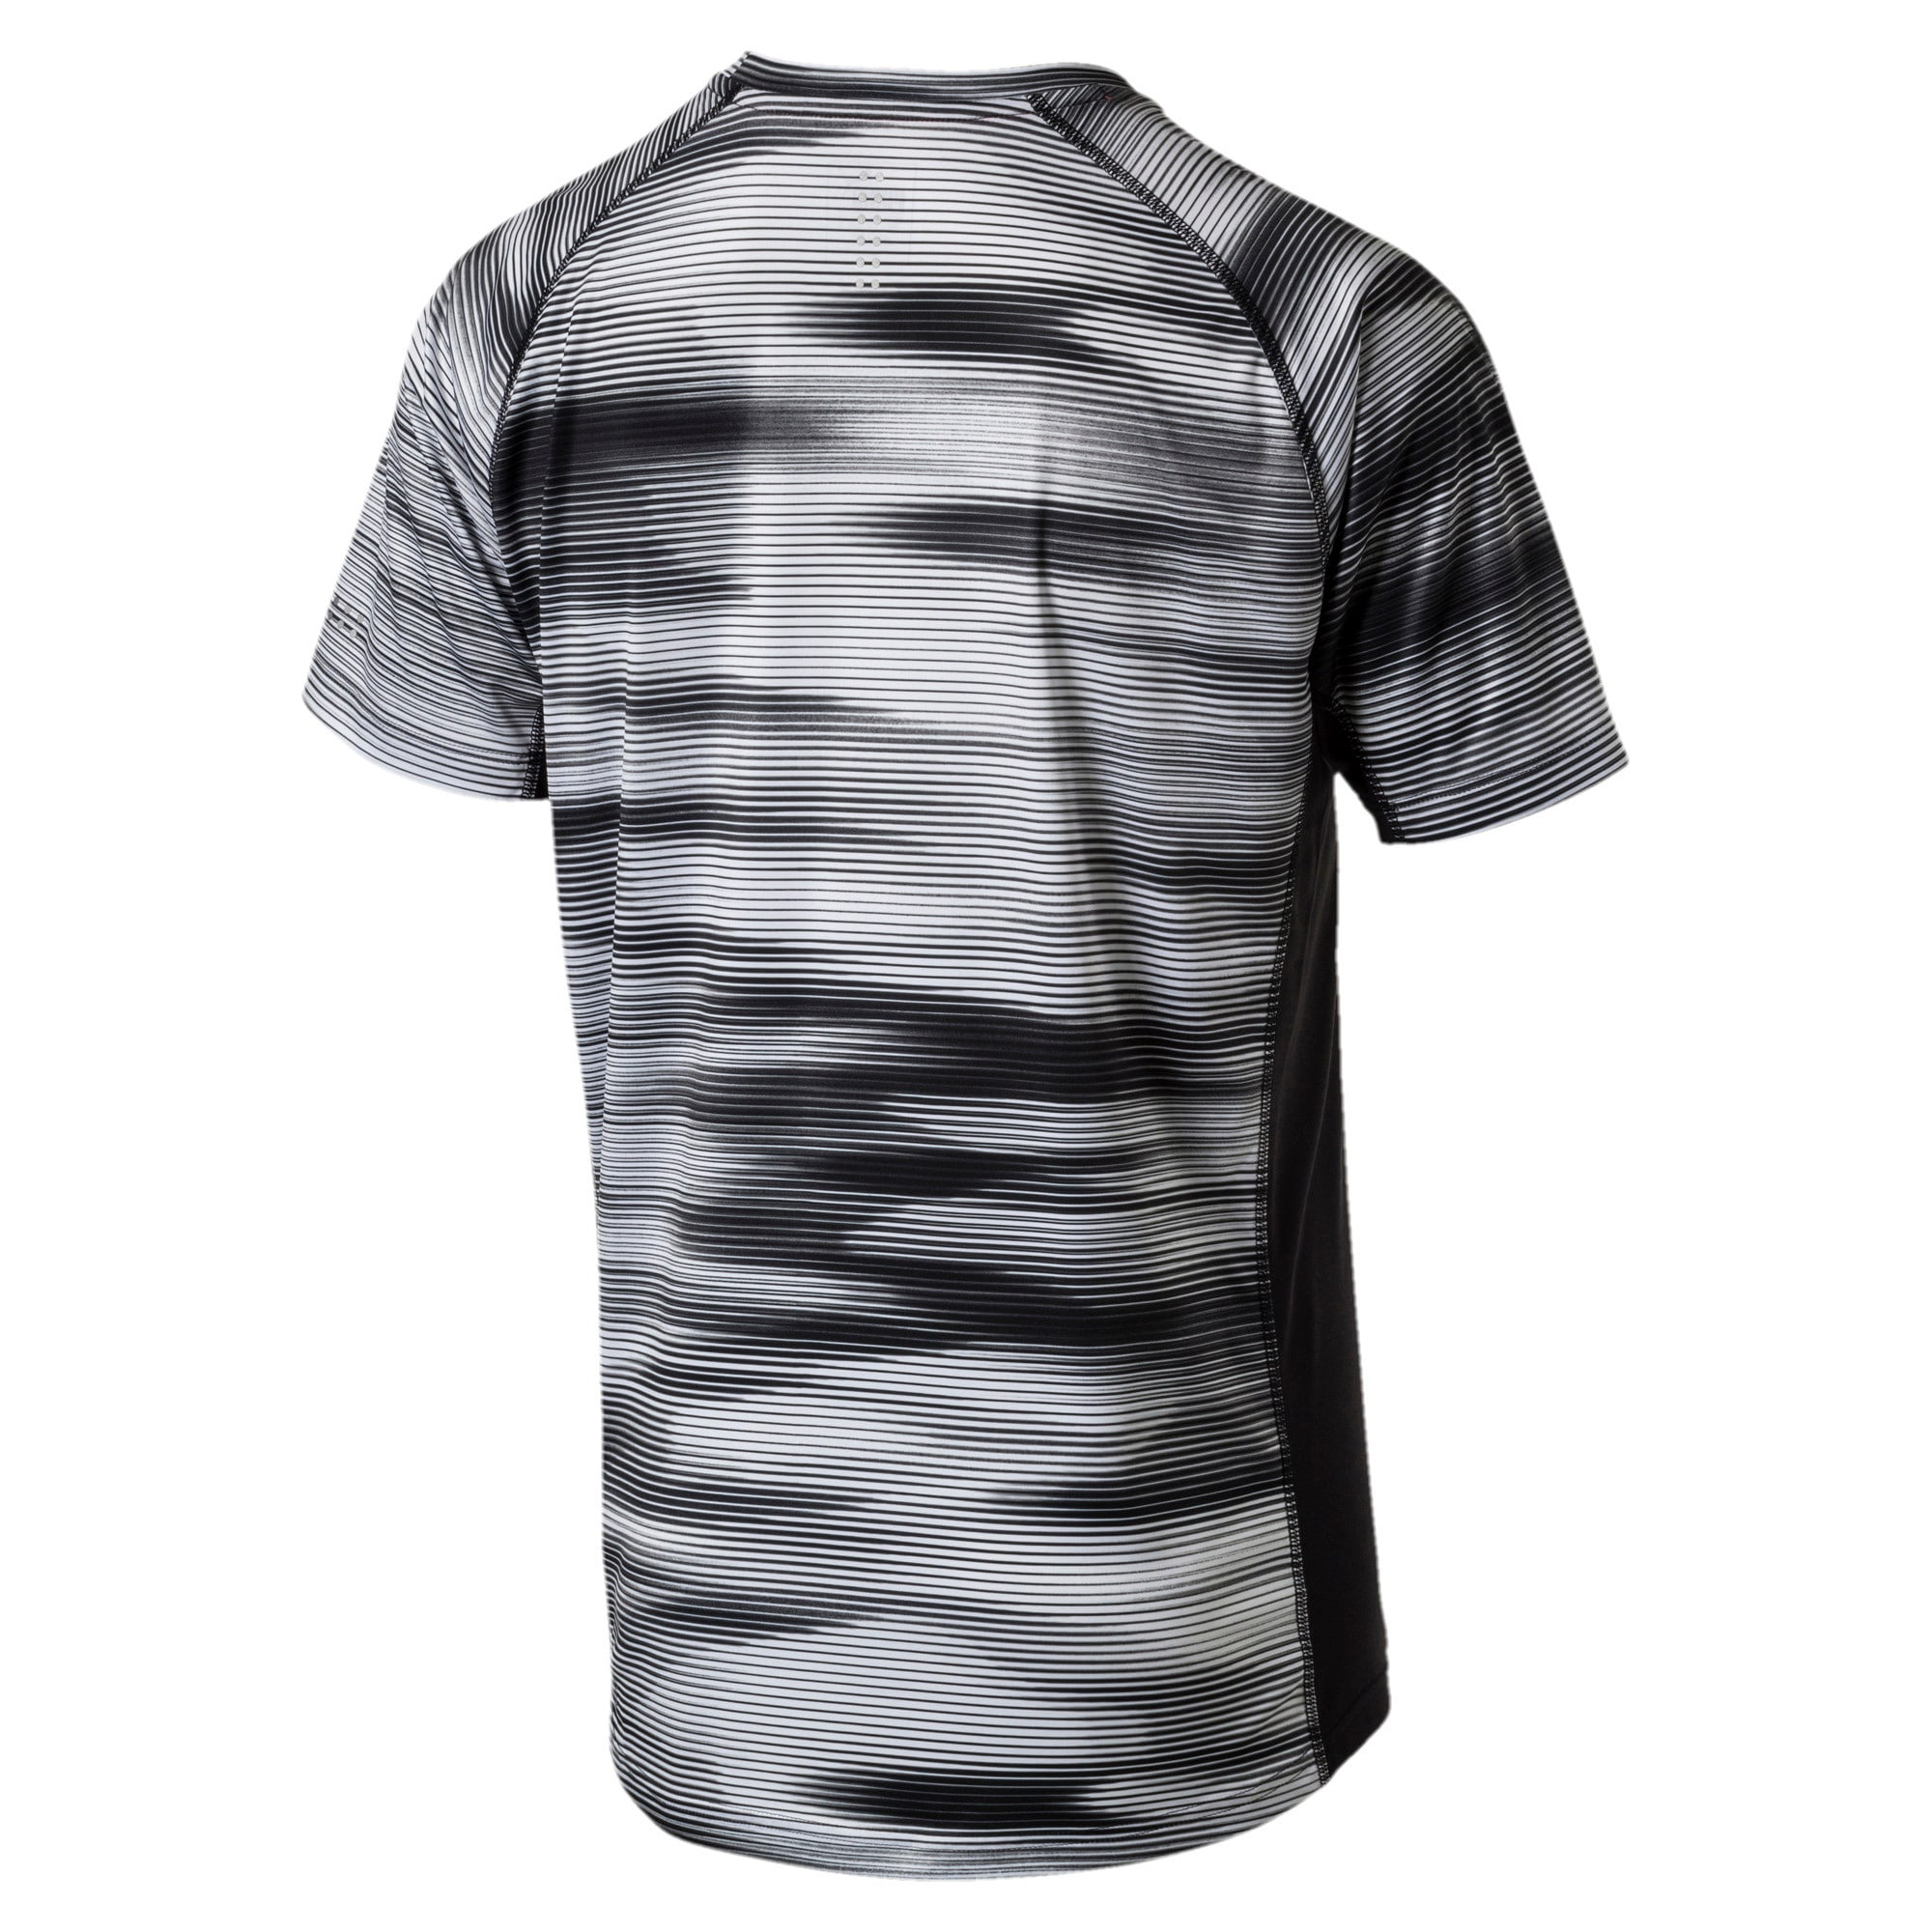 Thumbnail 5 of Running Men's Graphic T-Shirt, Puma Black Heather, medium-IND